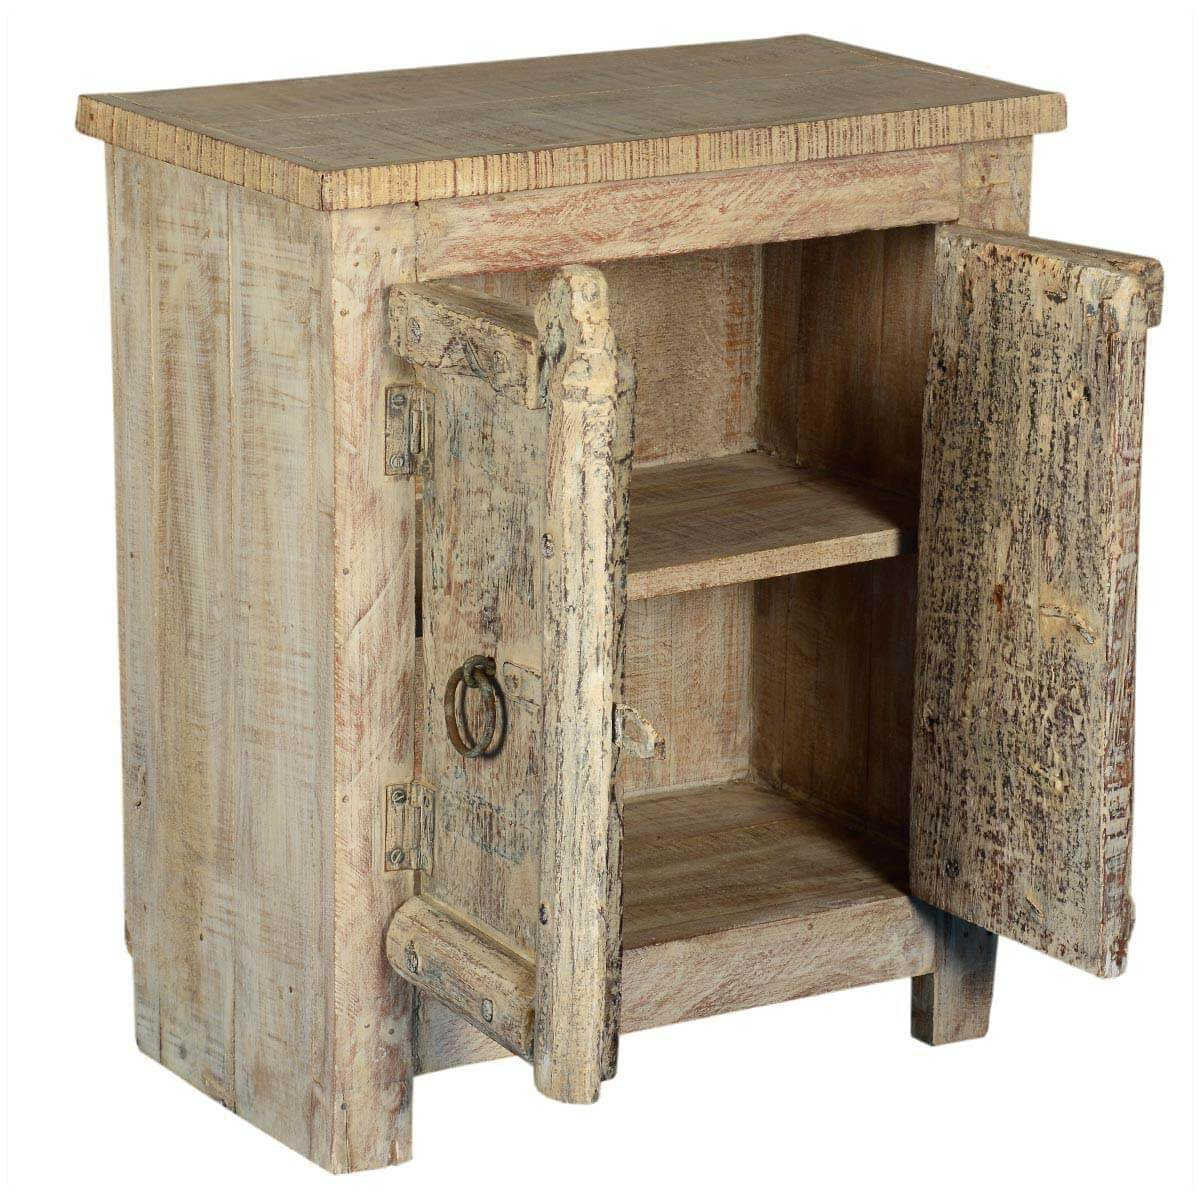 Amish 2 door old wood small rustic accent end table for Small wood end table